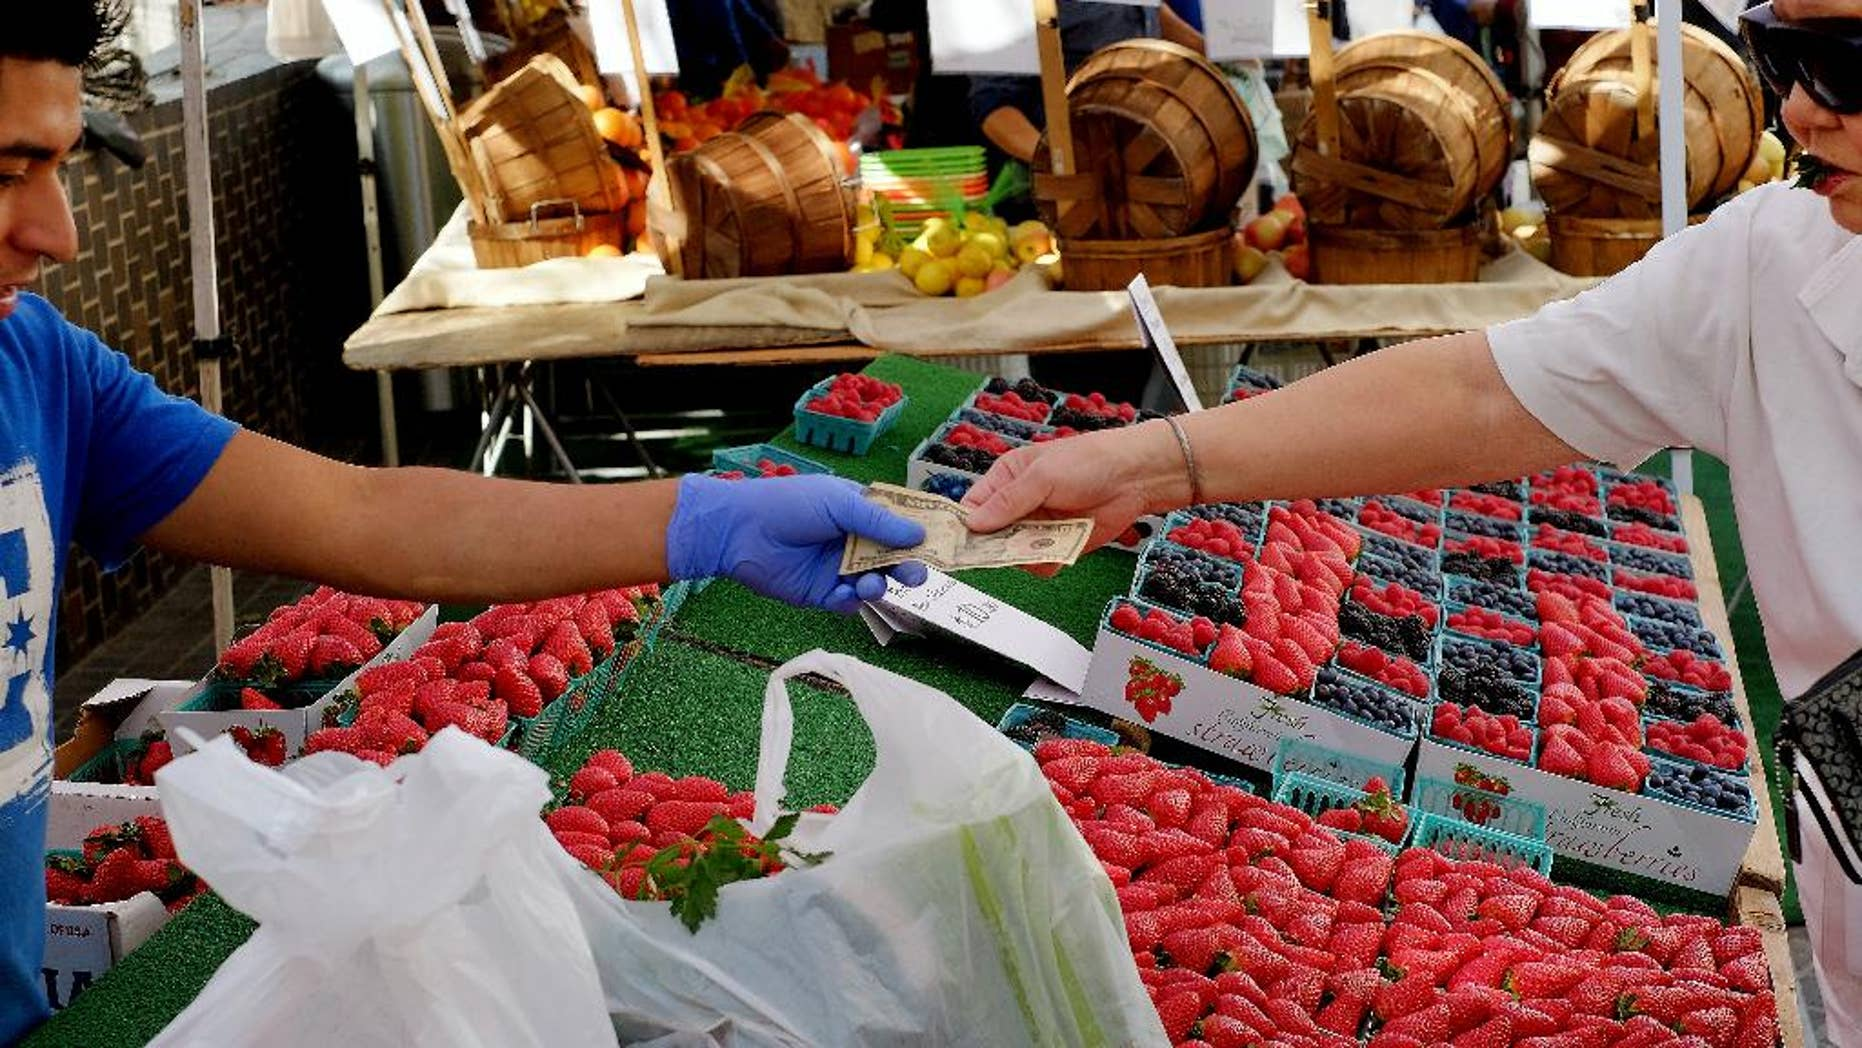 In this Friday, Feb. 6, 2015 photo, a shopper pays for produce at a Farmers Market in downtown Los Angeles. The Commerce Department releases its January report on consumer spending, which accounts for 70 percent of economic activity, on Monday, March 2, 2015. (AP Photo/Richard Vogel)